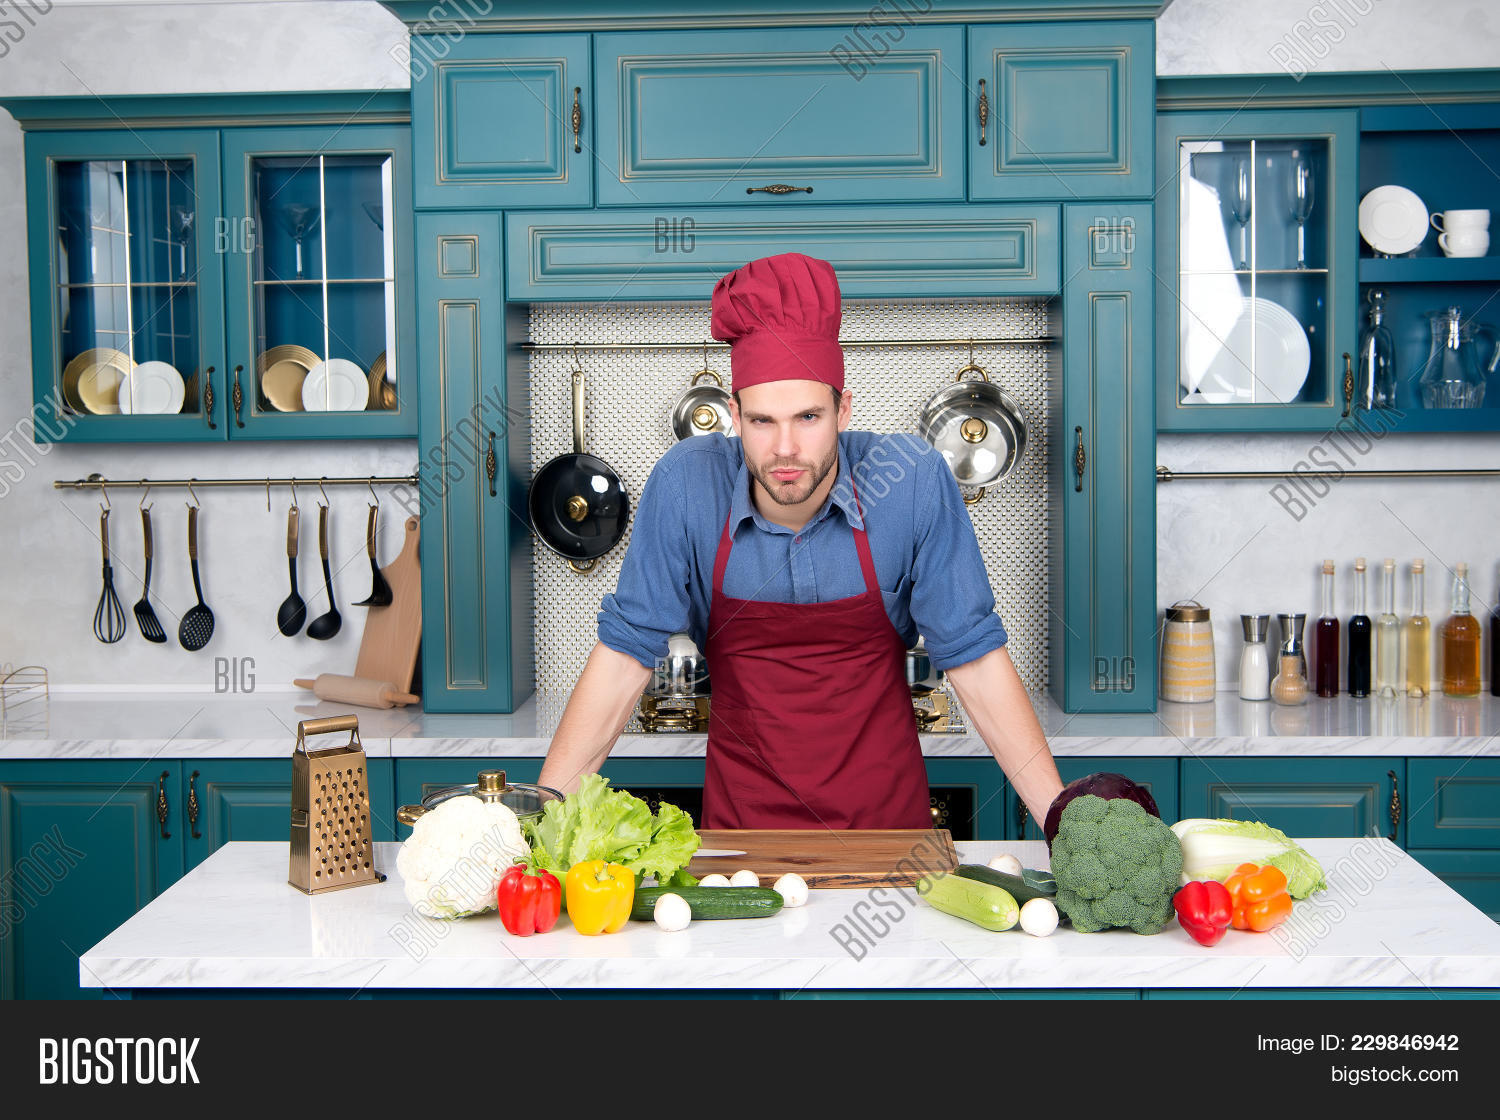 Man Chef Cook Kitchen, Cuisine. Image & Photo | Bigstock